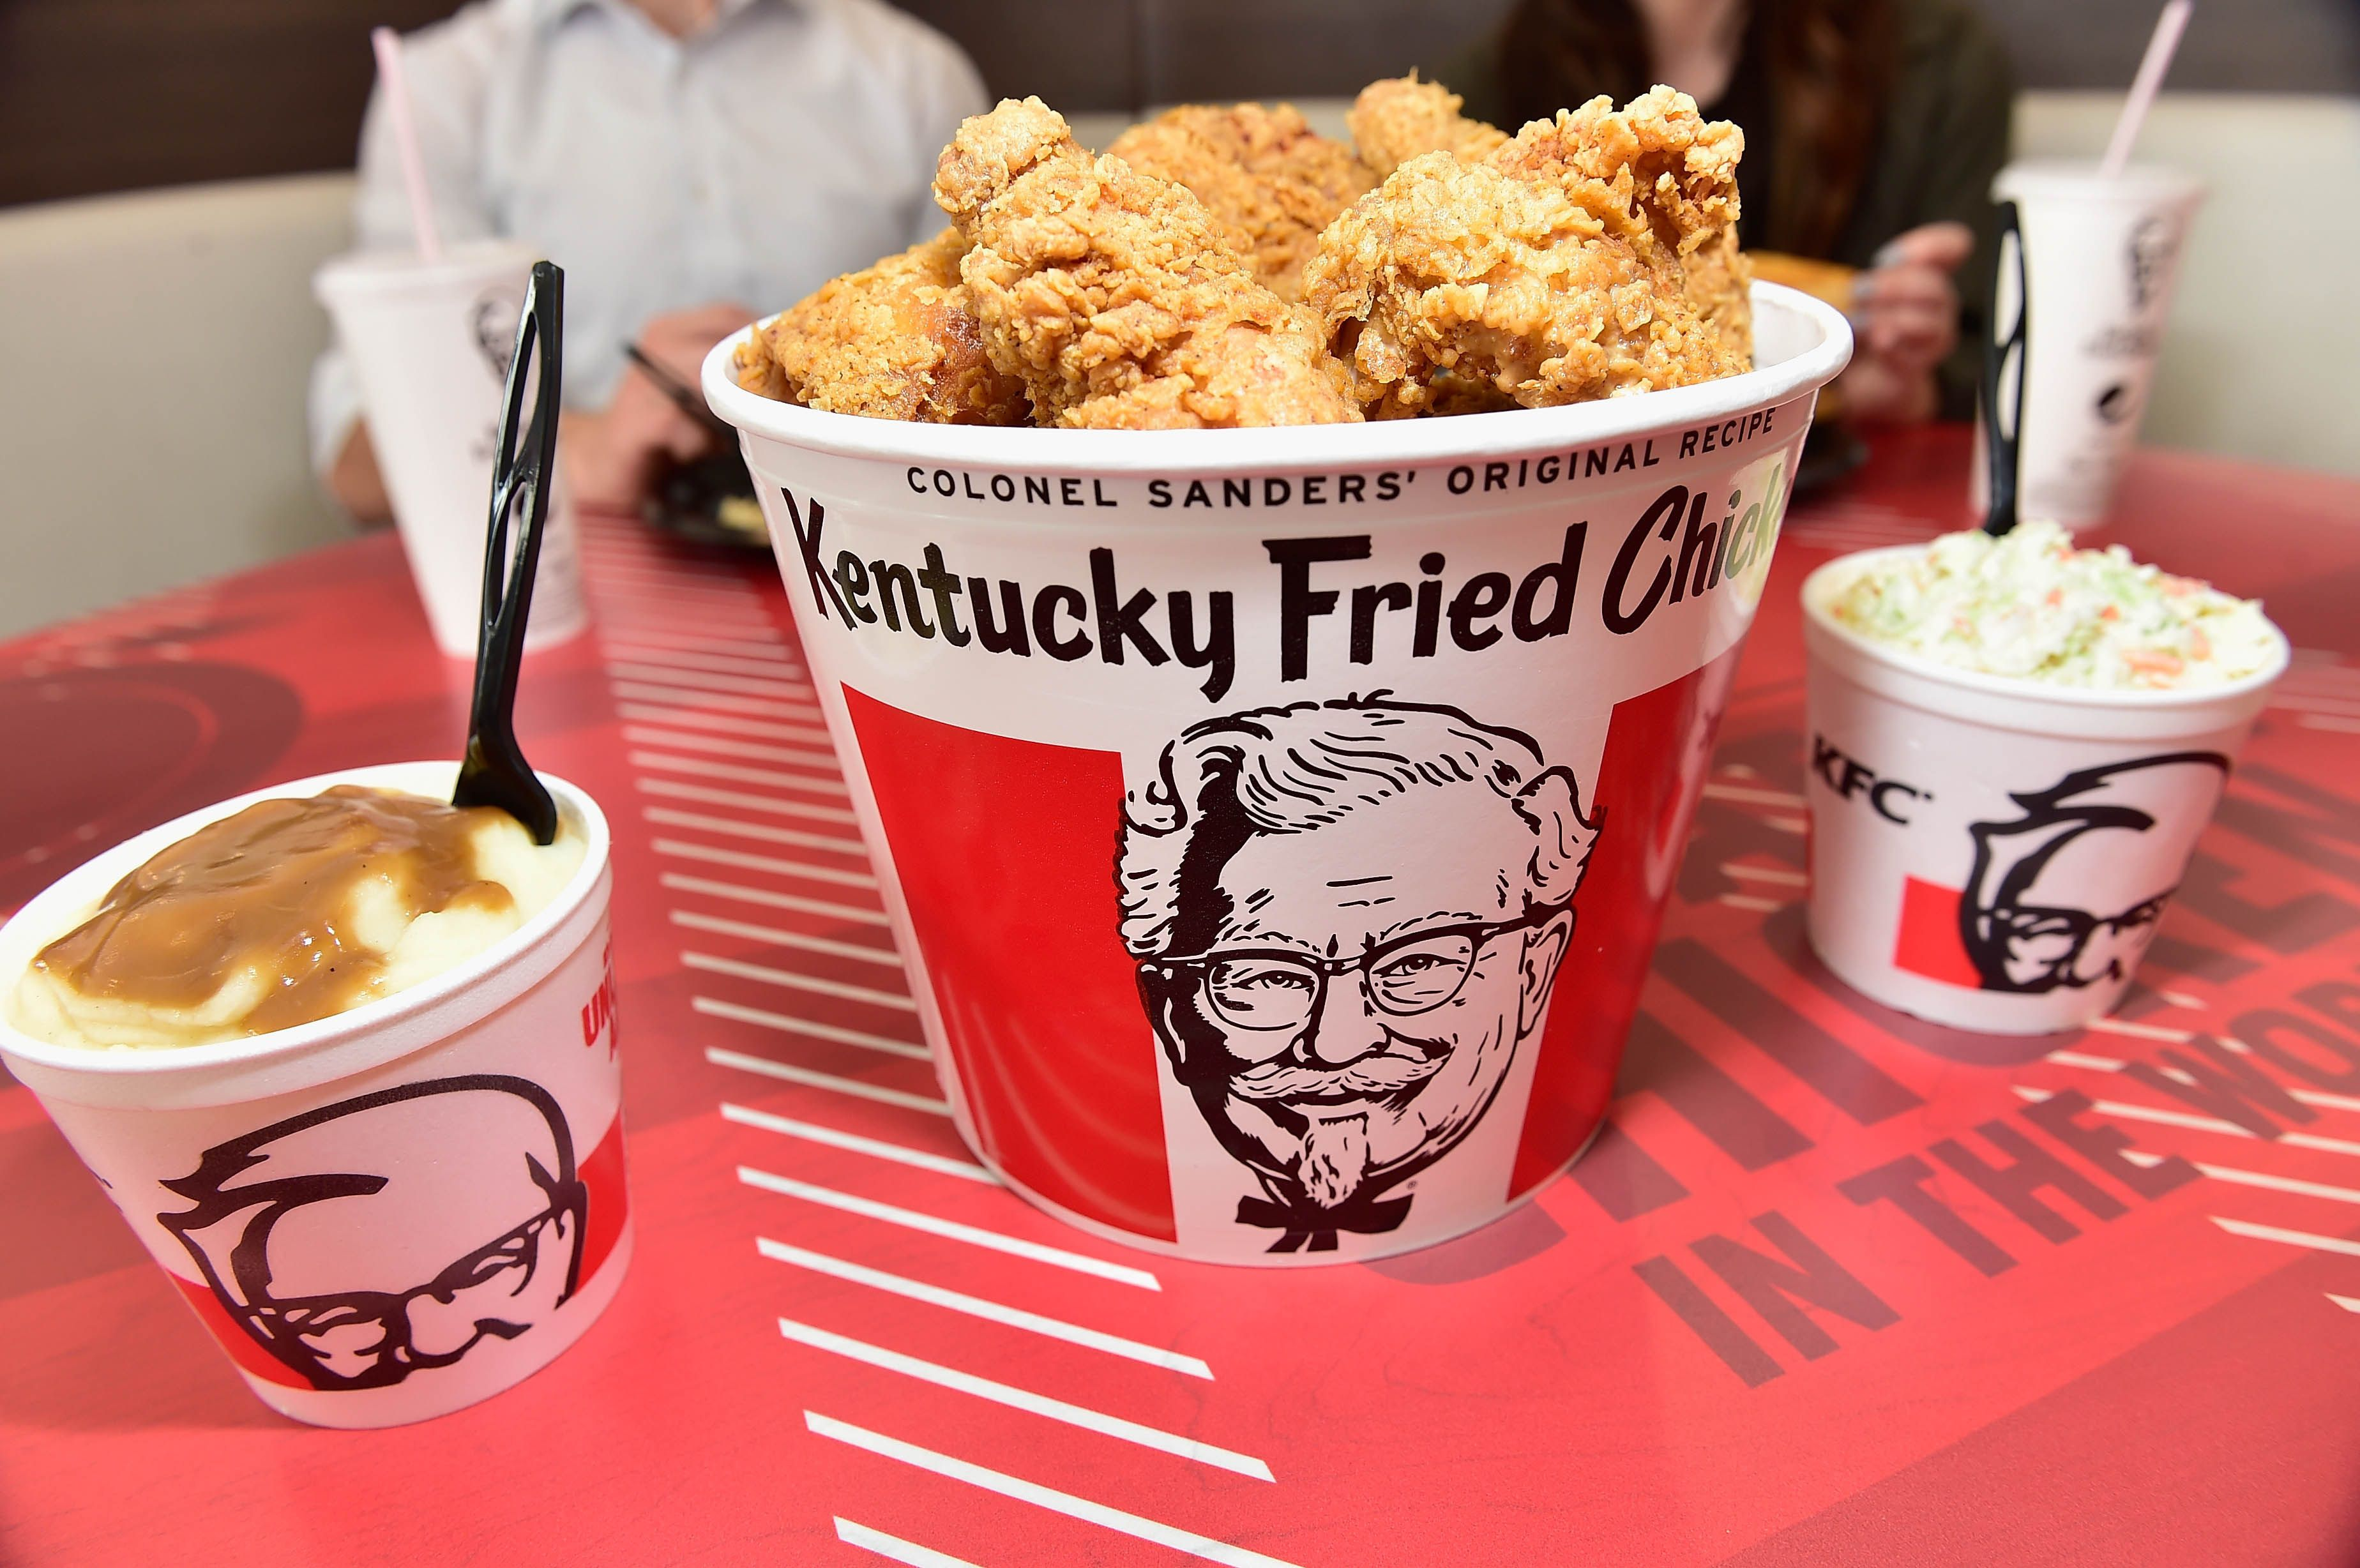 KFC's New Plant-Based 'Vegan' Fried Chicken: Everything You Need To Know